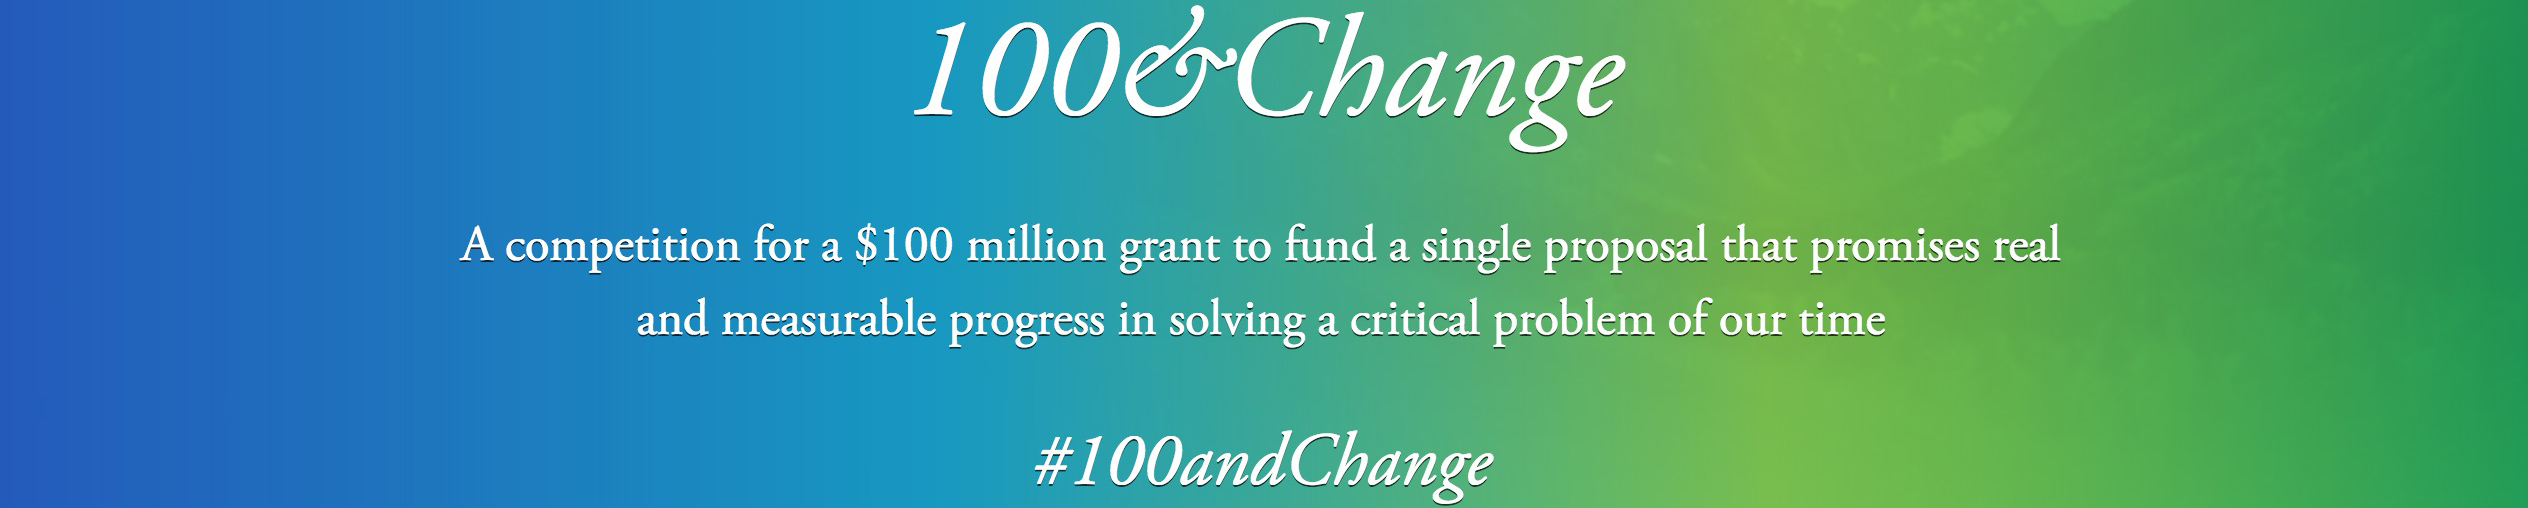 Text: 100&Change. A competition for a $100 million grant to fund a single proposal that promises real and measurable progress in solving a critical problem of our time. #100andChange